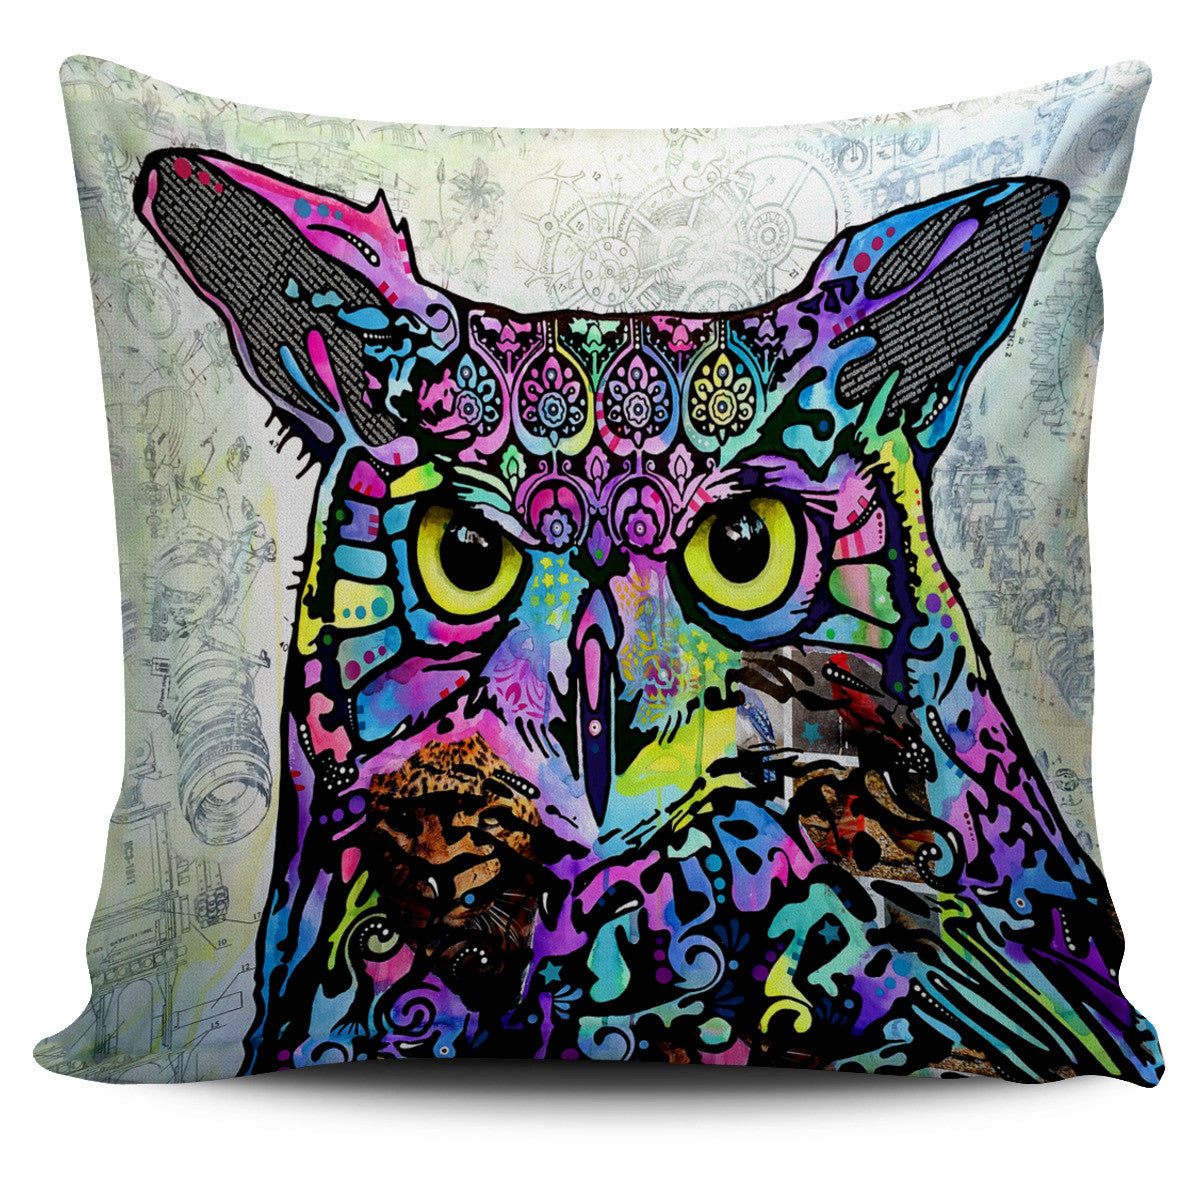 Owl Series Pillow Covers